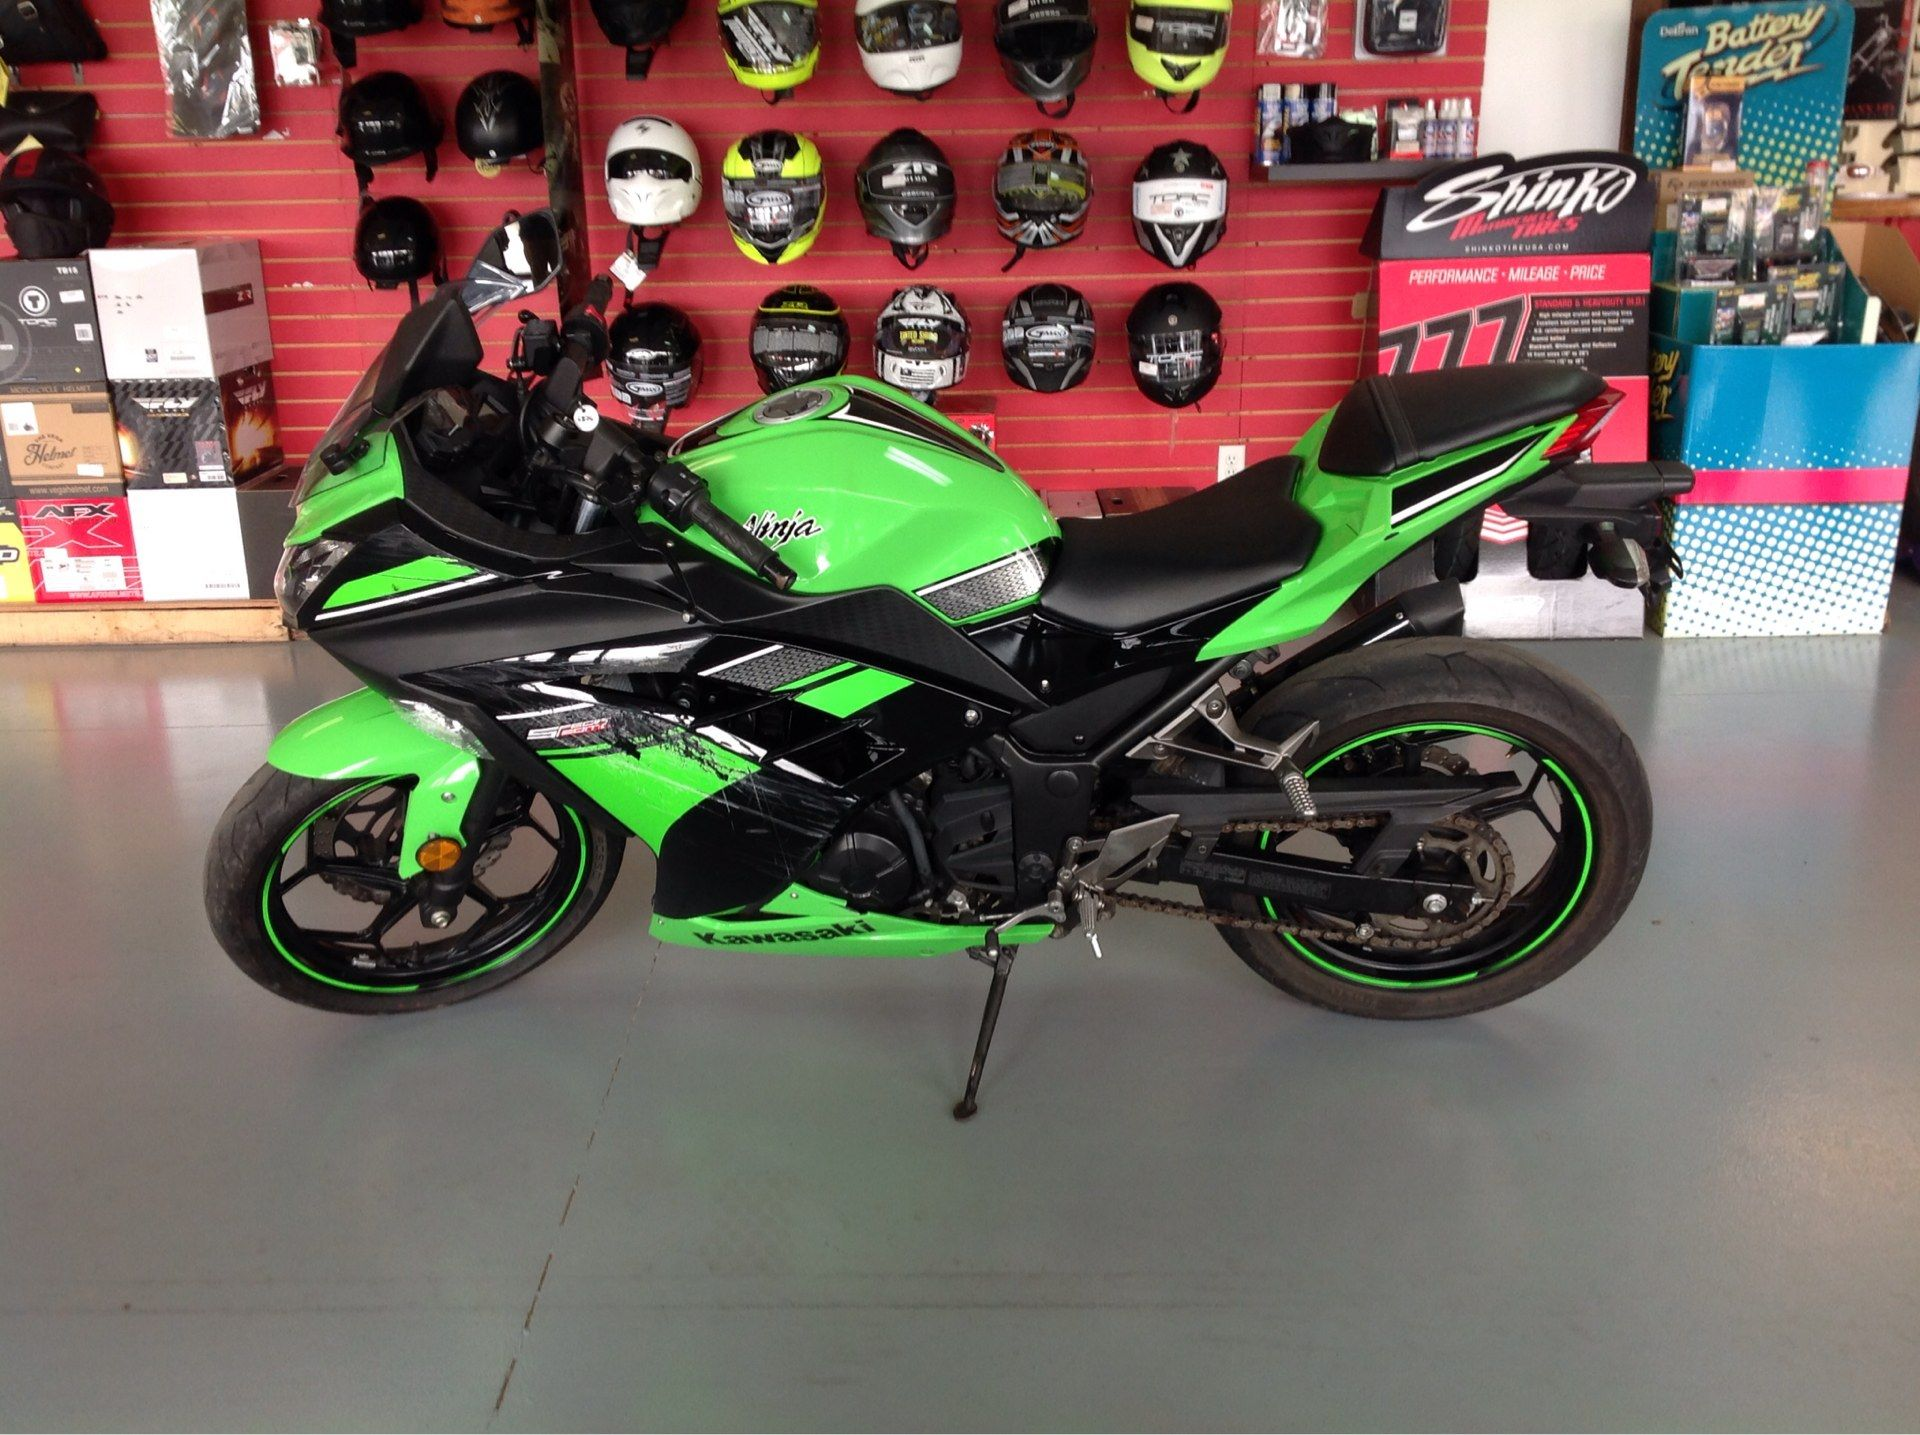 2013 Kawasaki Ninja® 300 in Lafayette, Indiana - Photo 1